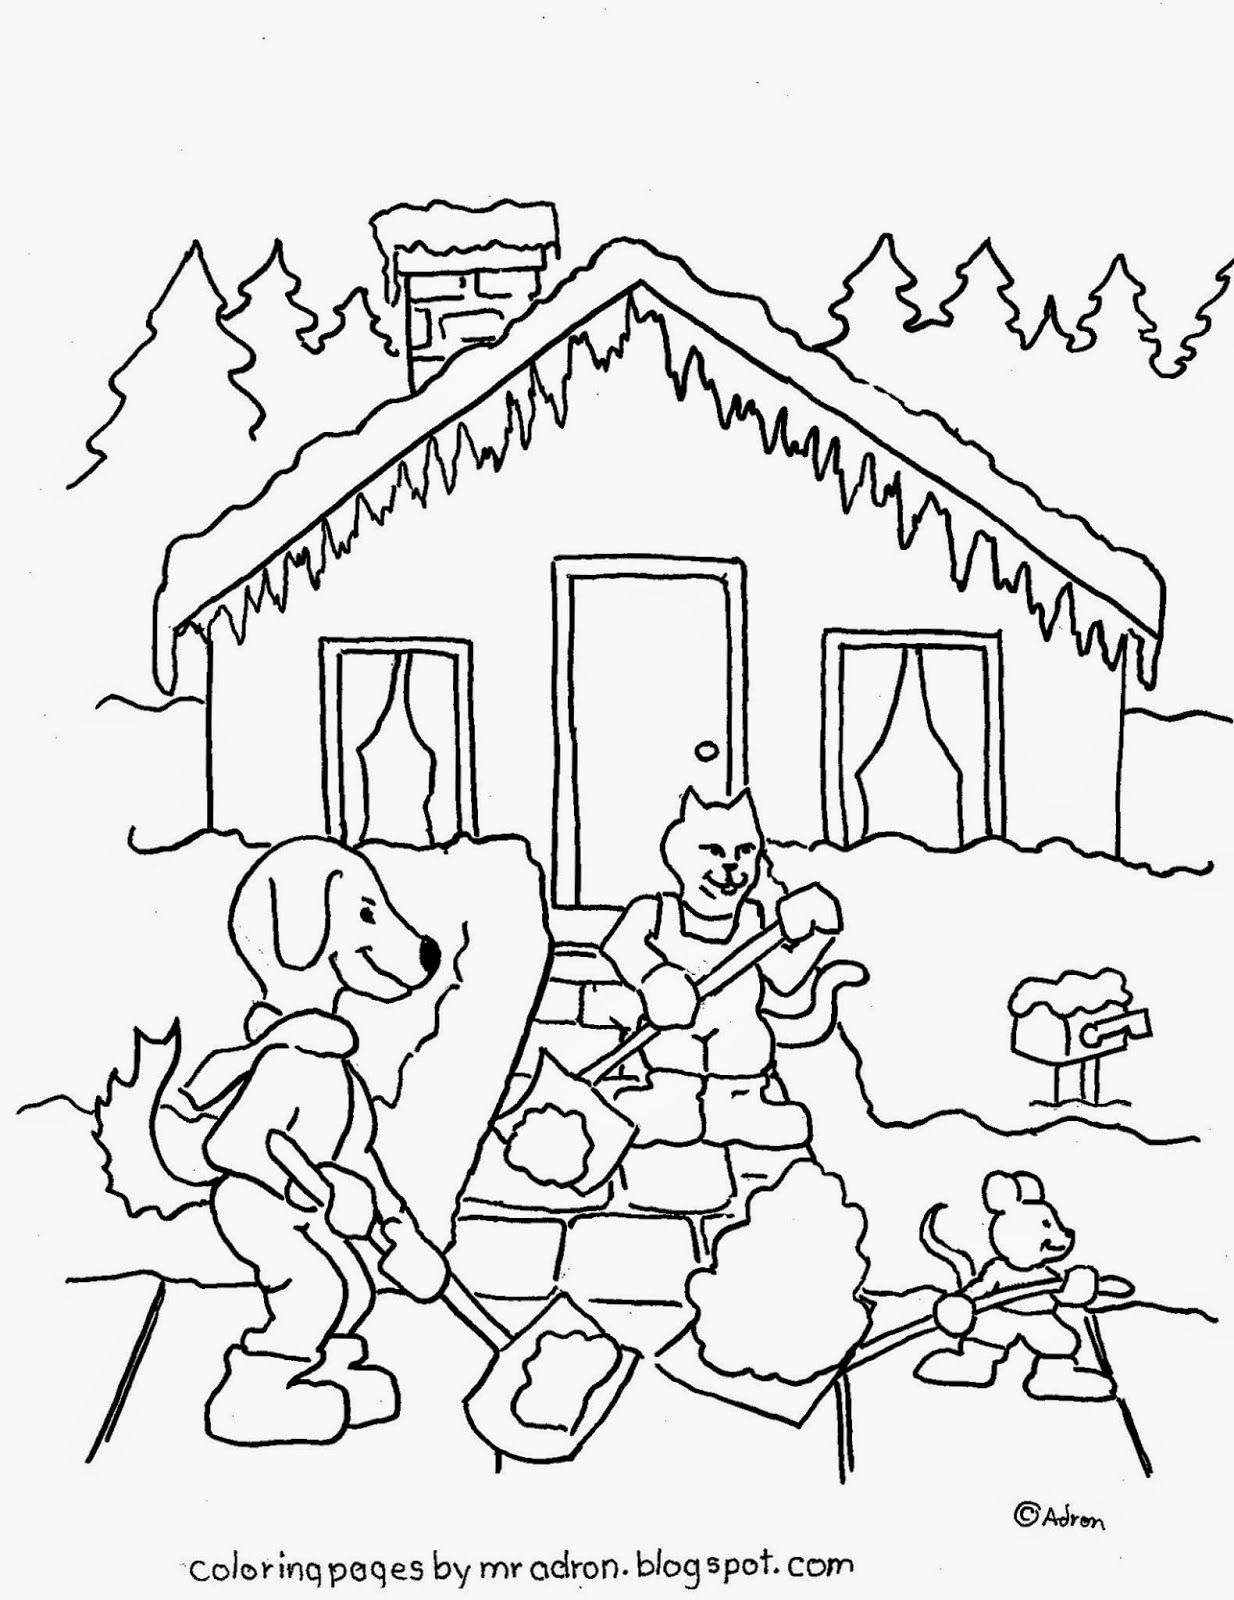 Coloring Pages For Kids By Mr Adron Free Coloring Page Animal Friends Shovel Snow Animals Friends Coloring Pages Free Coloring Pages